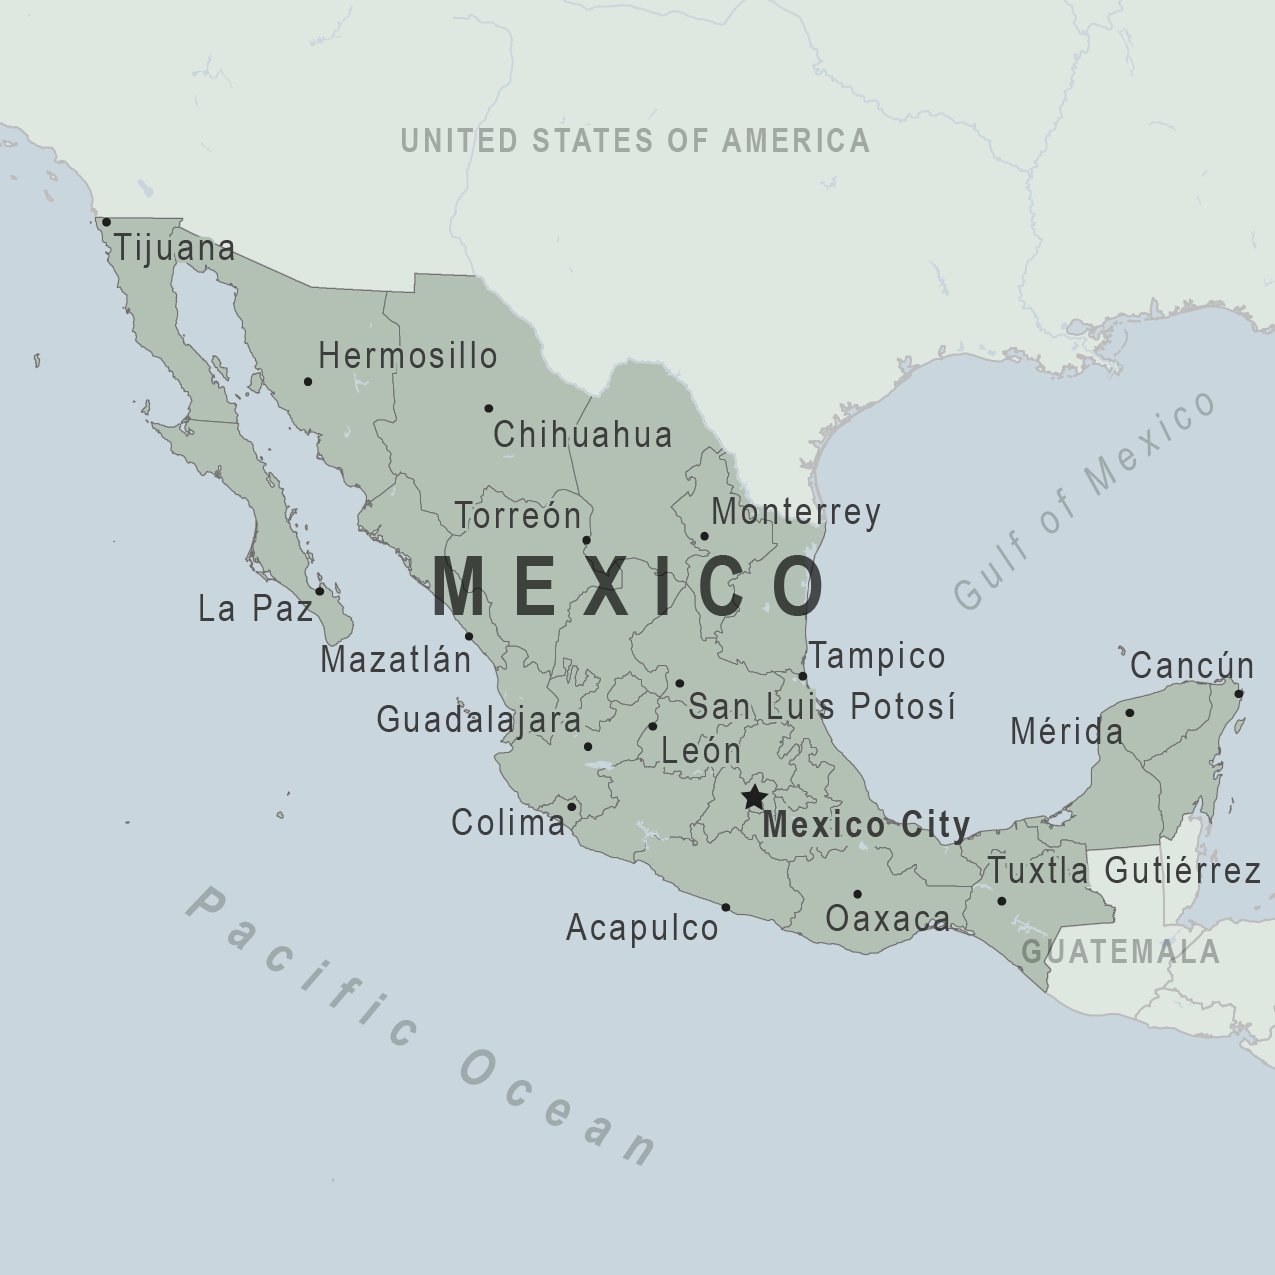 Scientists from Mexico and Central America | Wisconsin ...